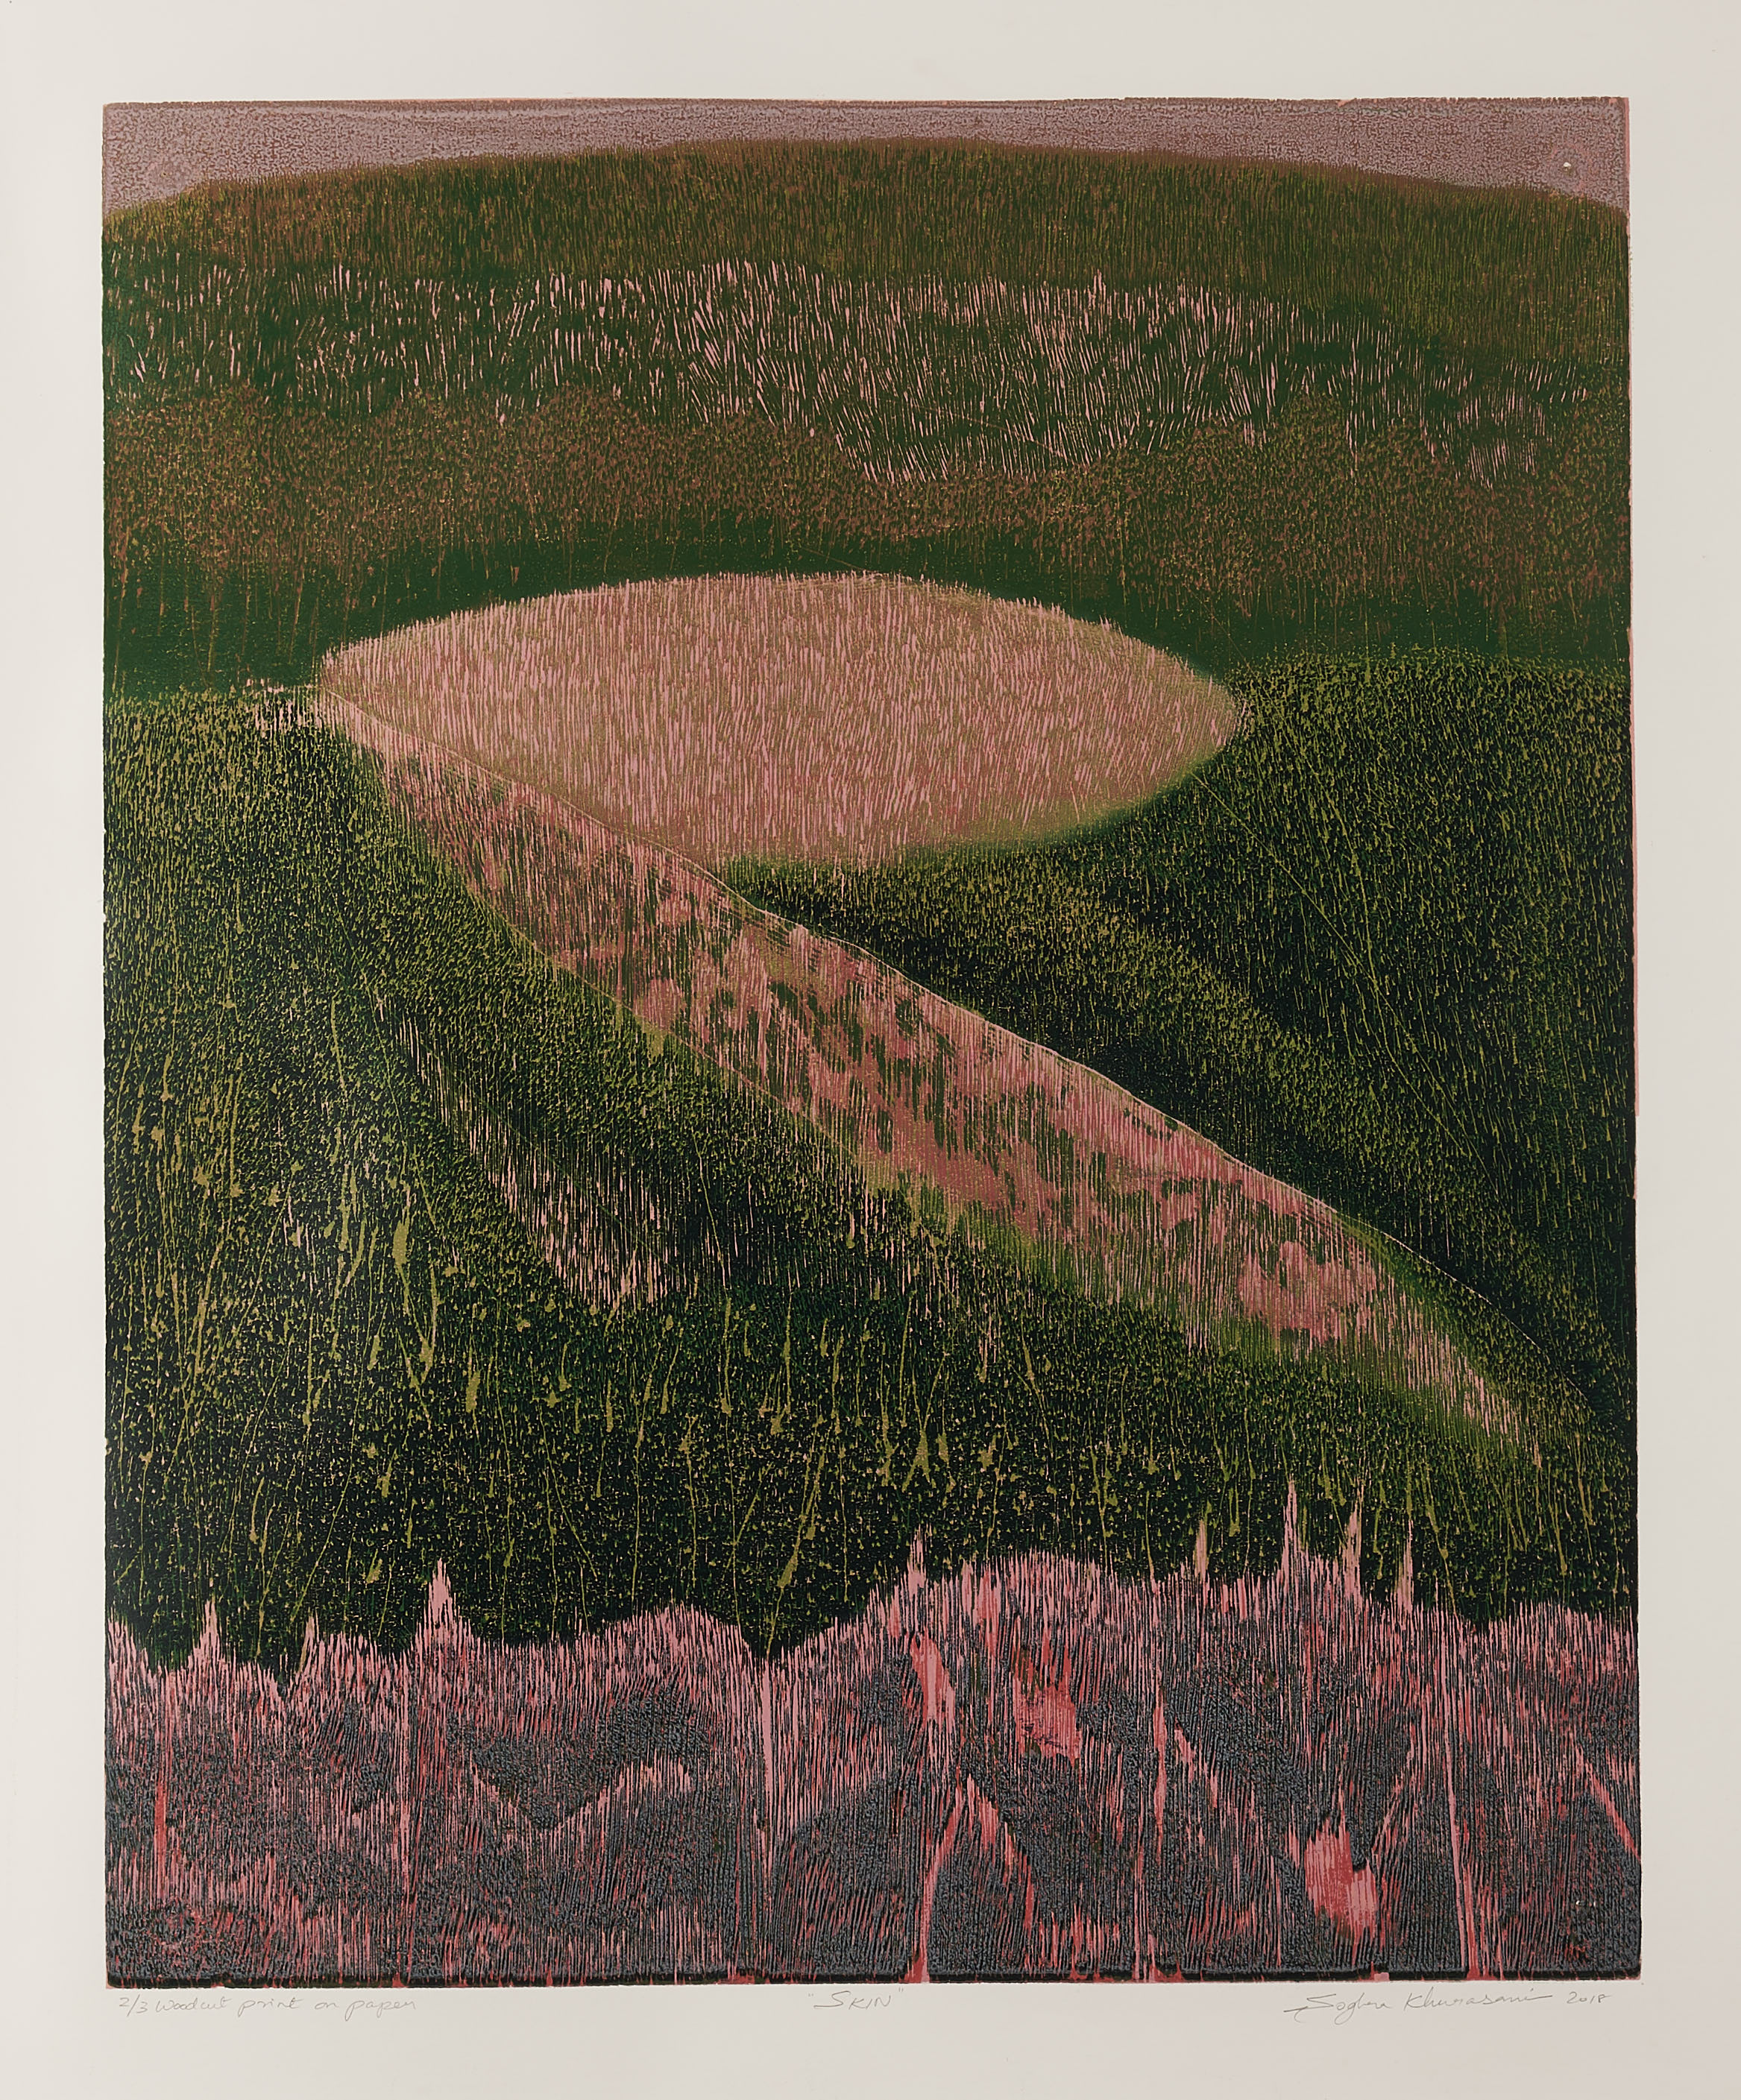 Skin 8, 2018, woodcut, image size: 24 x 19.5 in. [61 x 49.5 cms] $1,400 (unframed)